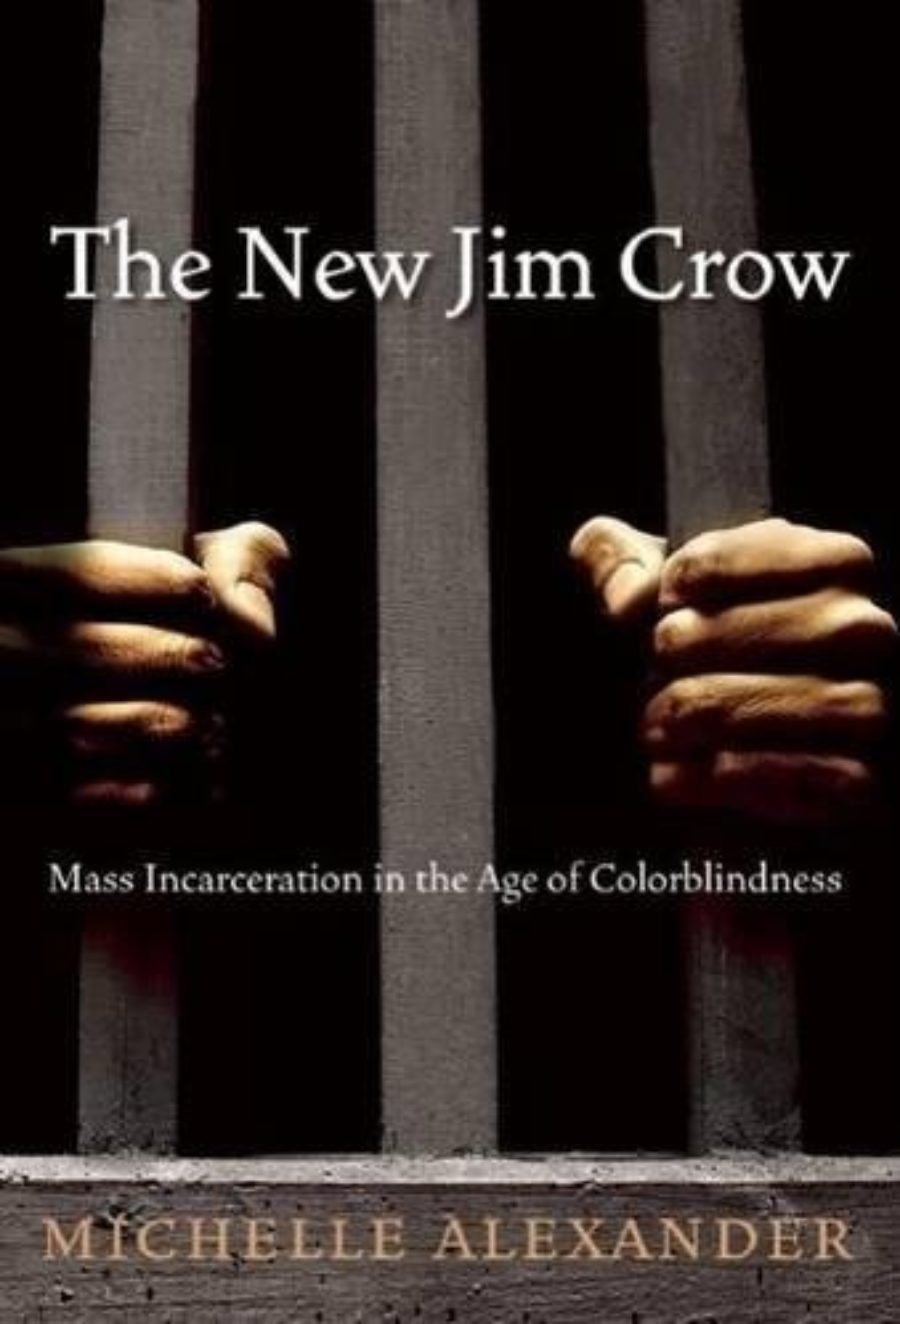 Michelle Alexander Who We Want To Become Beyond The New Jim Crow